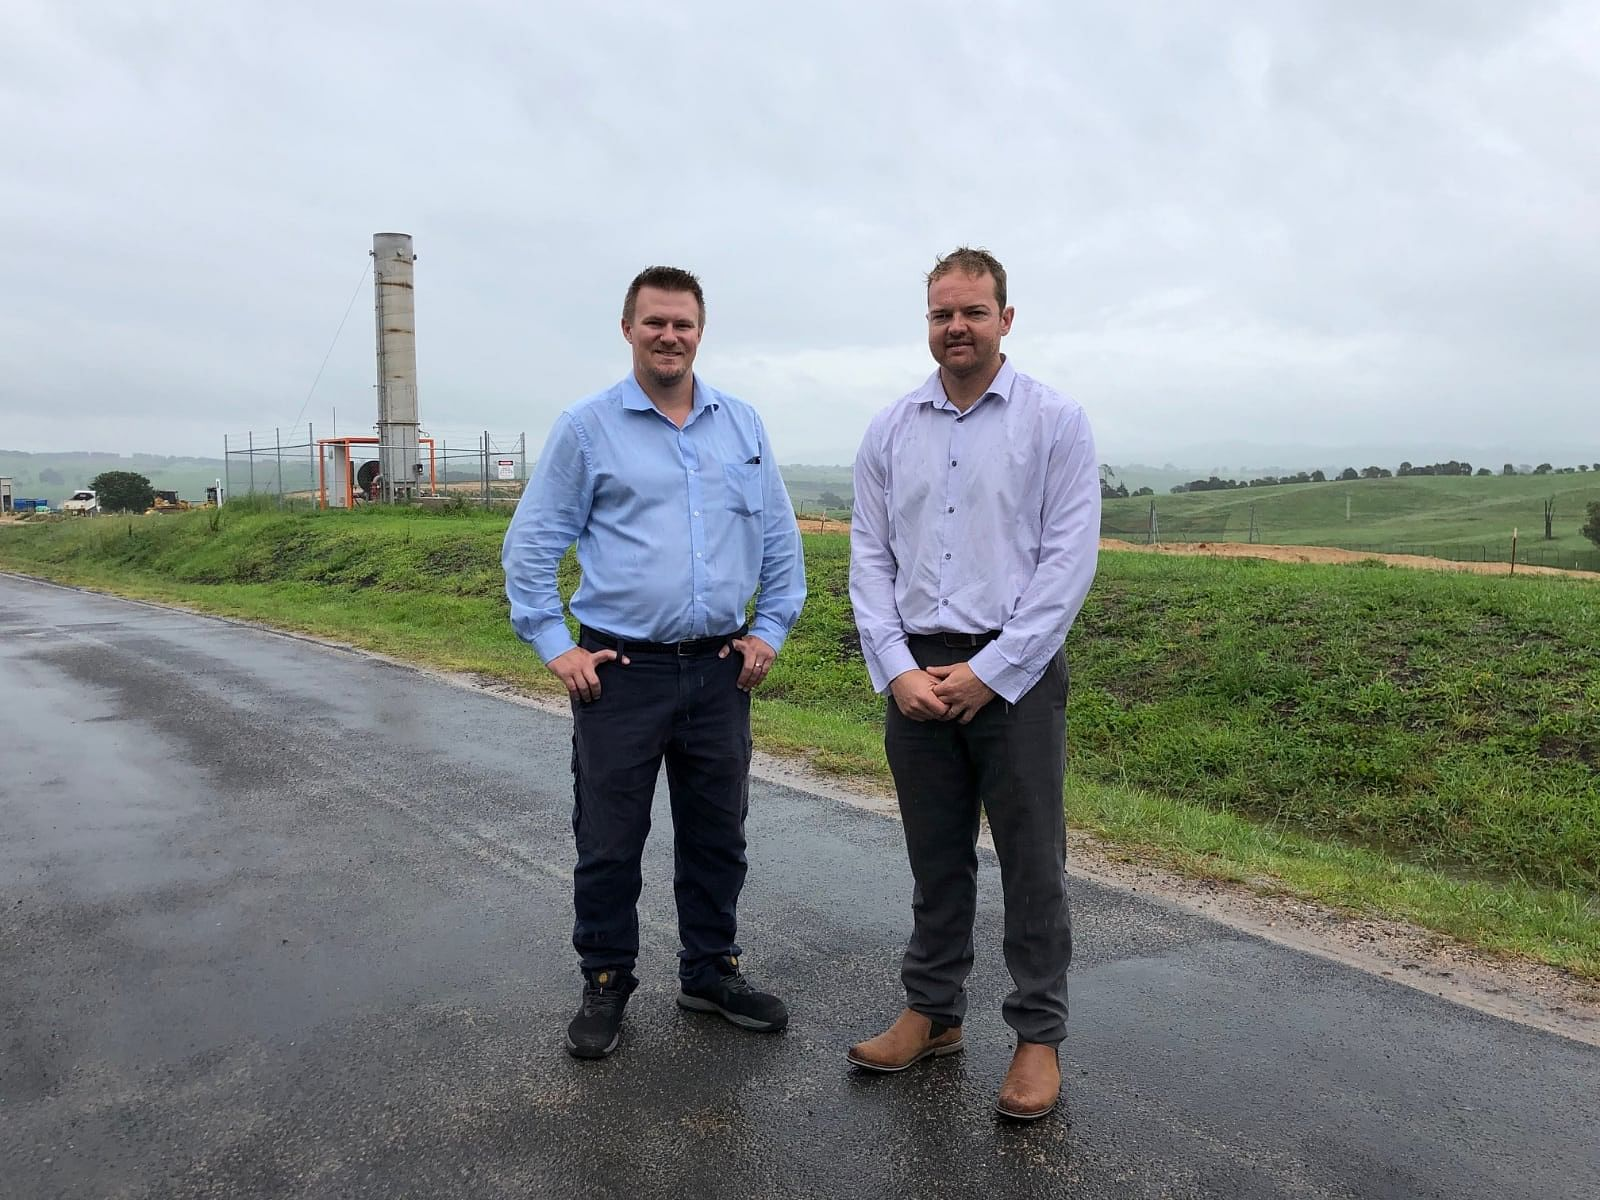 Anthony McMahon, Director Assets & Operations and Kurt Marsh, Acting Waste Services Manager at the Central Waste Facility.